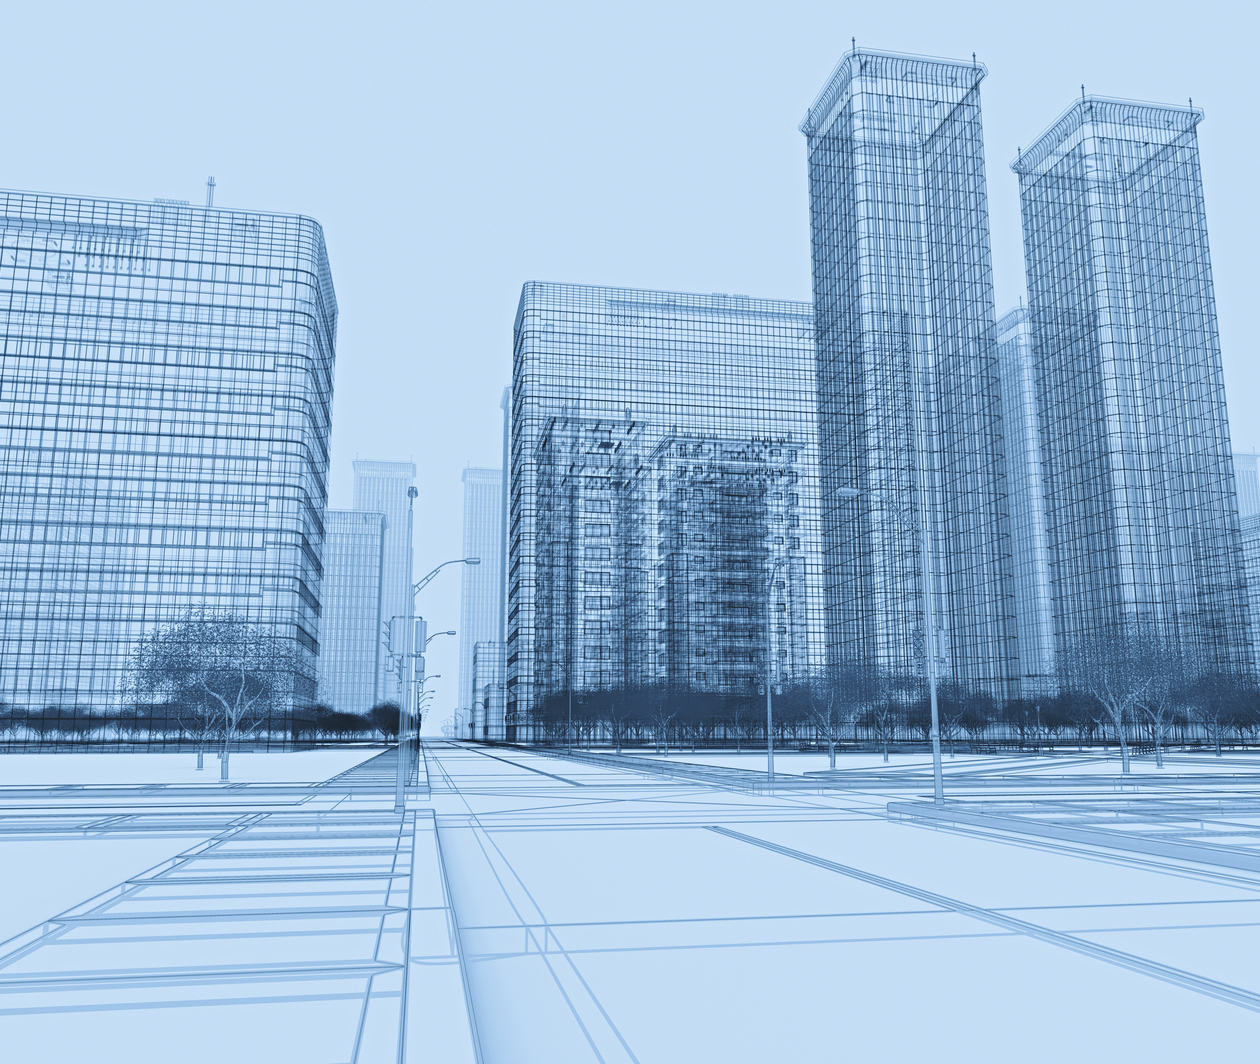 The Roles and Responsibilities in BIM